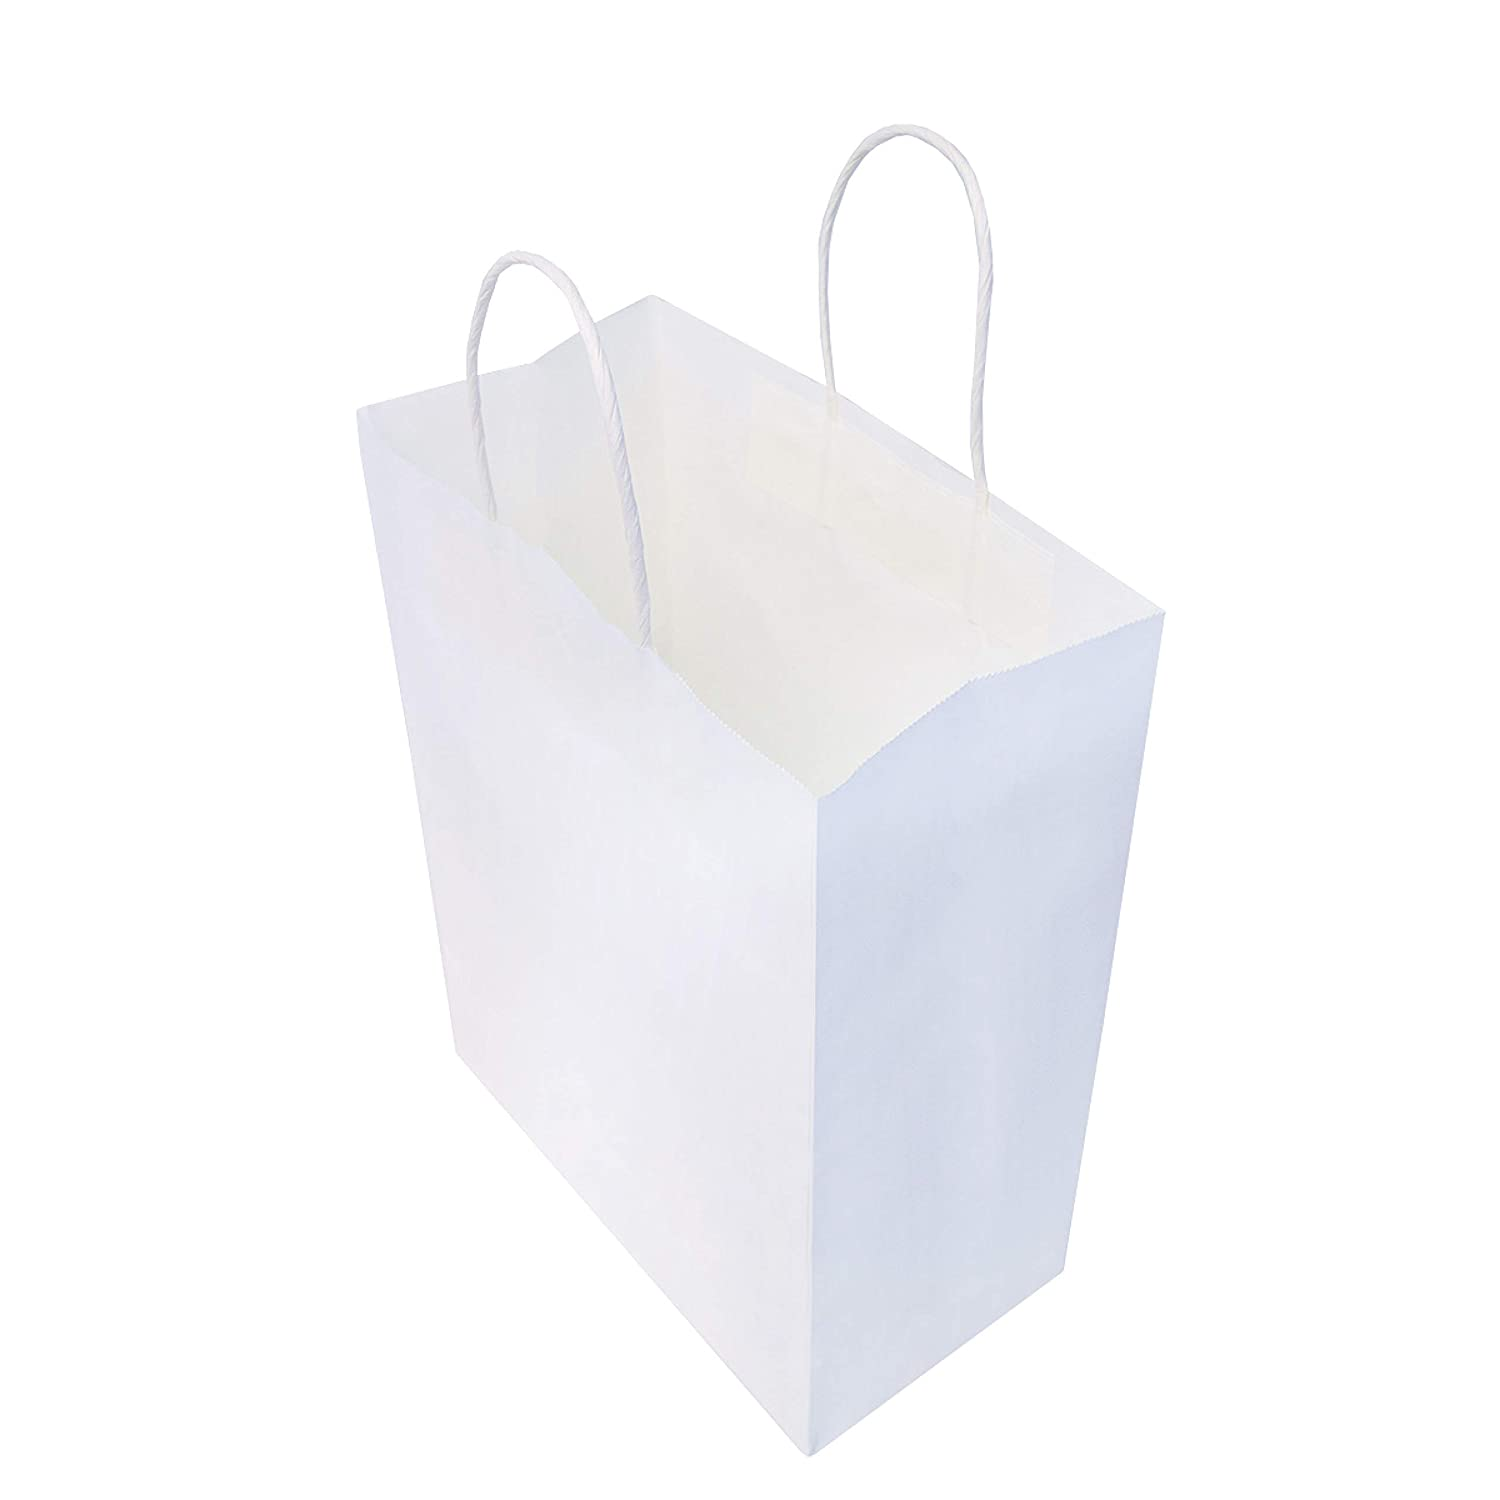 "8x4x10"" - 50 Pcs - White Kraft Paper Bags with Handles, Birthday Parties, Restaurant takeouts, Shopping, Merchandise, Party, Retail, Gift Bags"